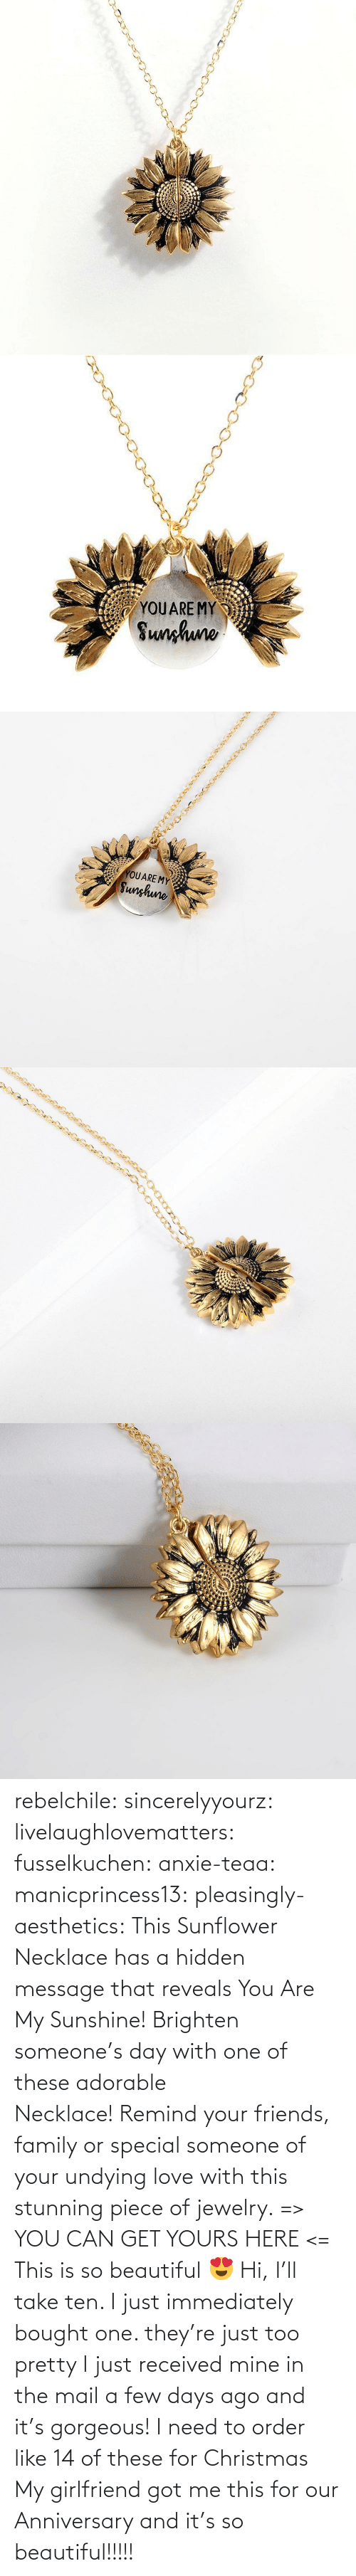 Gorgeous: rebelchile:  sincerelyyourz:  livelaughlovematters:  fusselkuchen:  anxie-teaa:   manicprincess13:   pleasingly-aesthetics:  This Sunflower Necklace has a hidden message that reveals You Are My Sunshine! Brighten someone's day with one of these adorable Necklace! Remind your friends, family or special someone of your undying love with this stunning piece of jewelry. => YOU CAN GET YOURS HERE <=   This is so beautiful 😍    Hi, I'll take ten.    I just immediately bought one. they're just too pretty   I just received mine in the mail a few days ago and it's gorgeous!   I need to order like 14 of these for Christmas    My girlfriend got me this for our Anniversary and it's so beautiful!!!!!